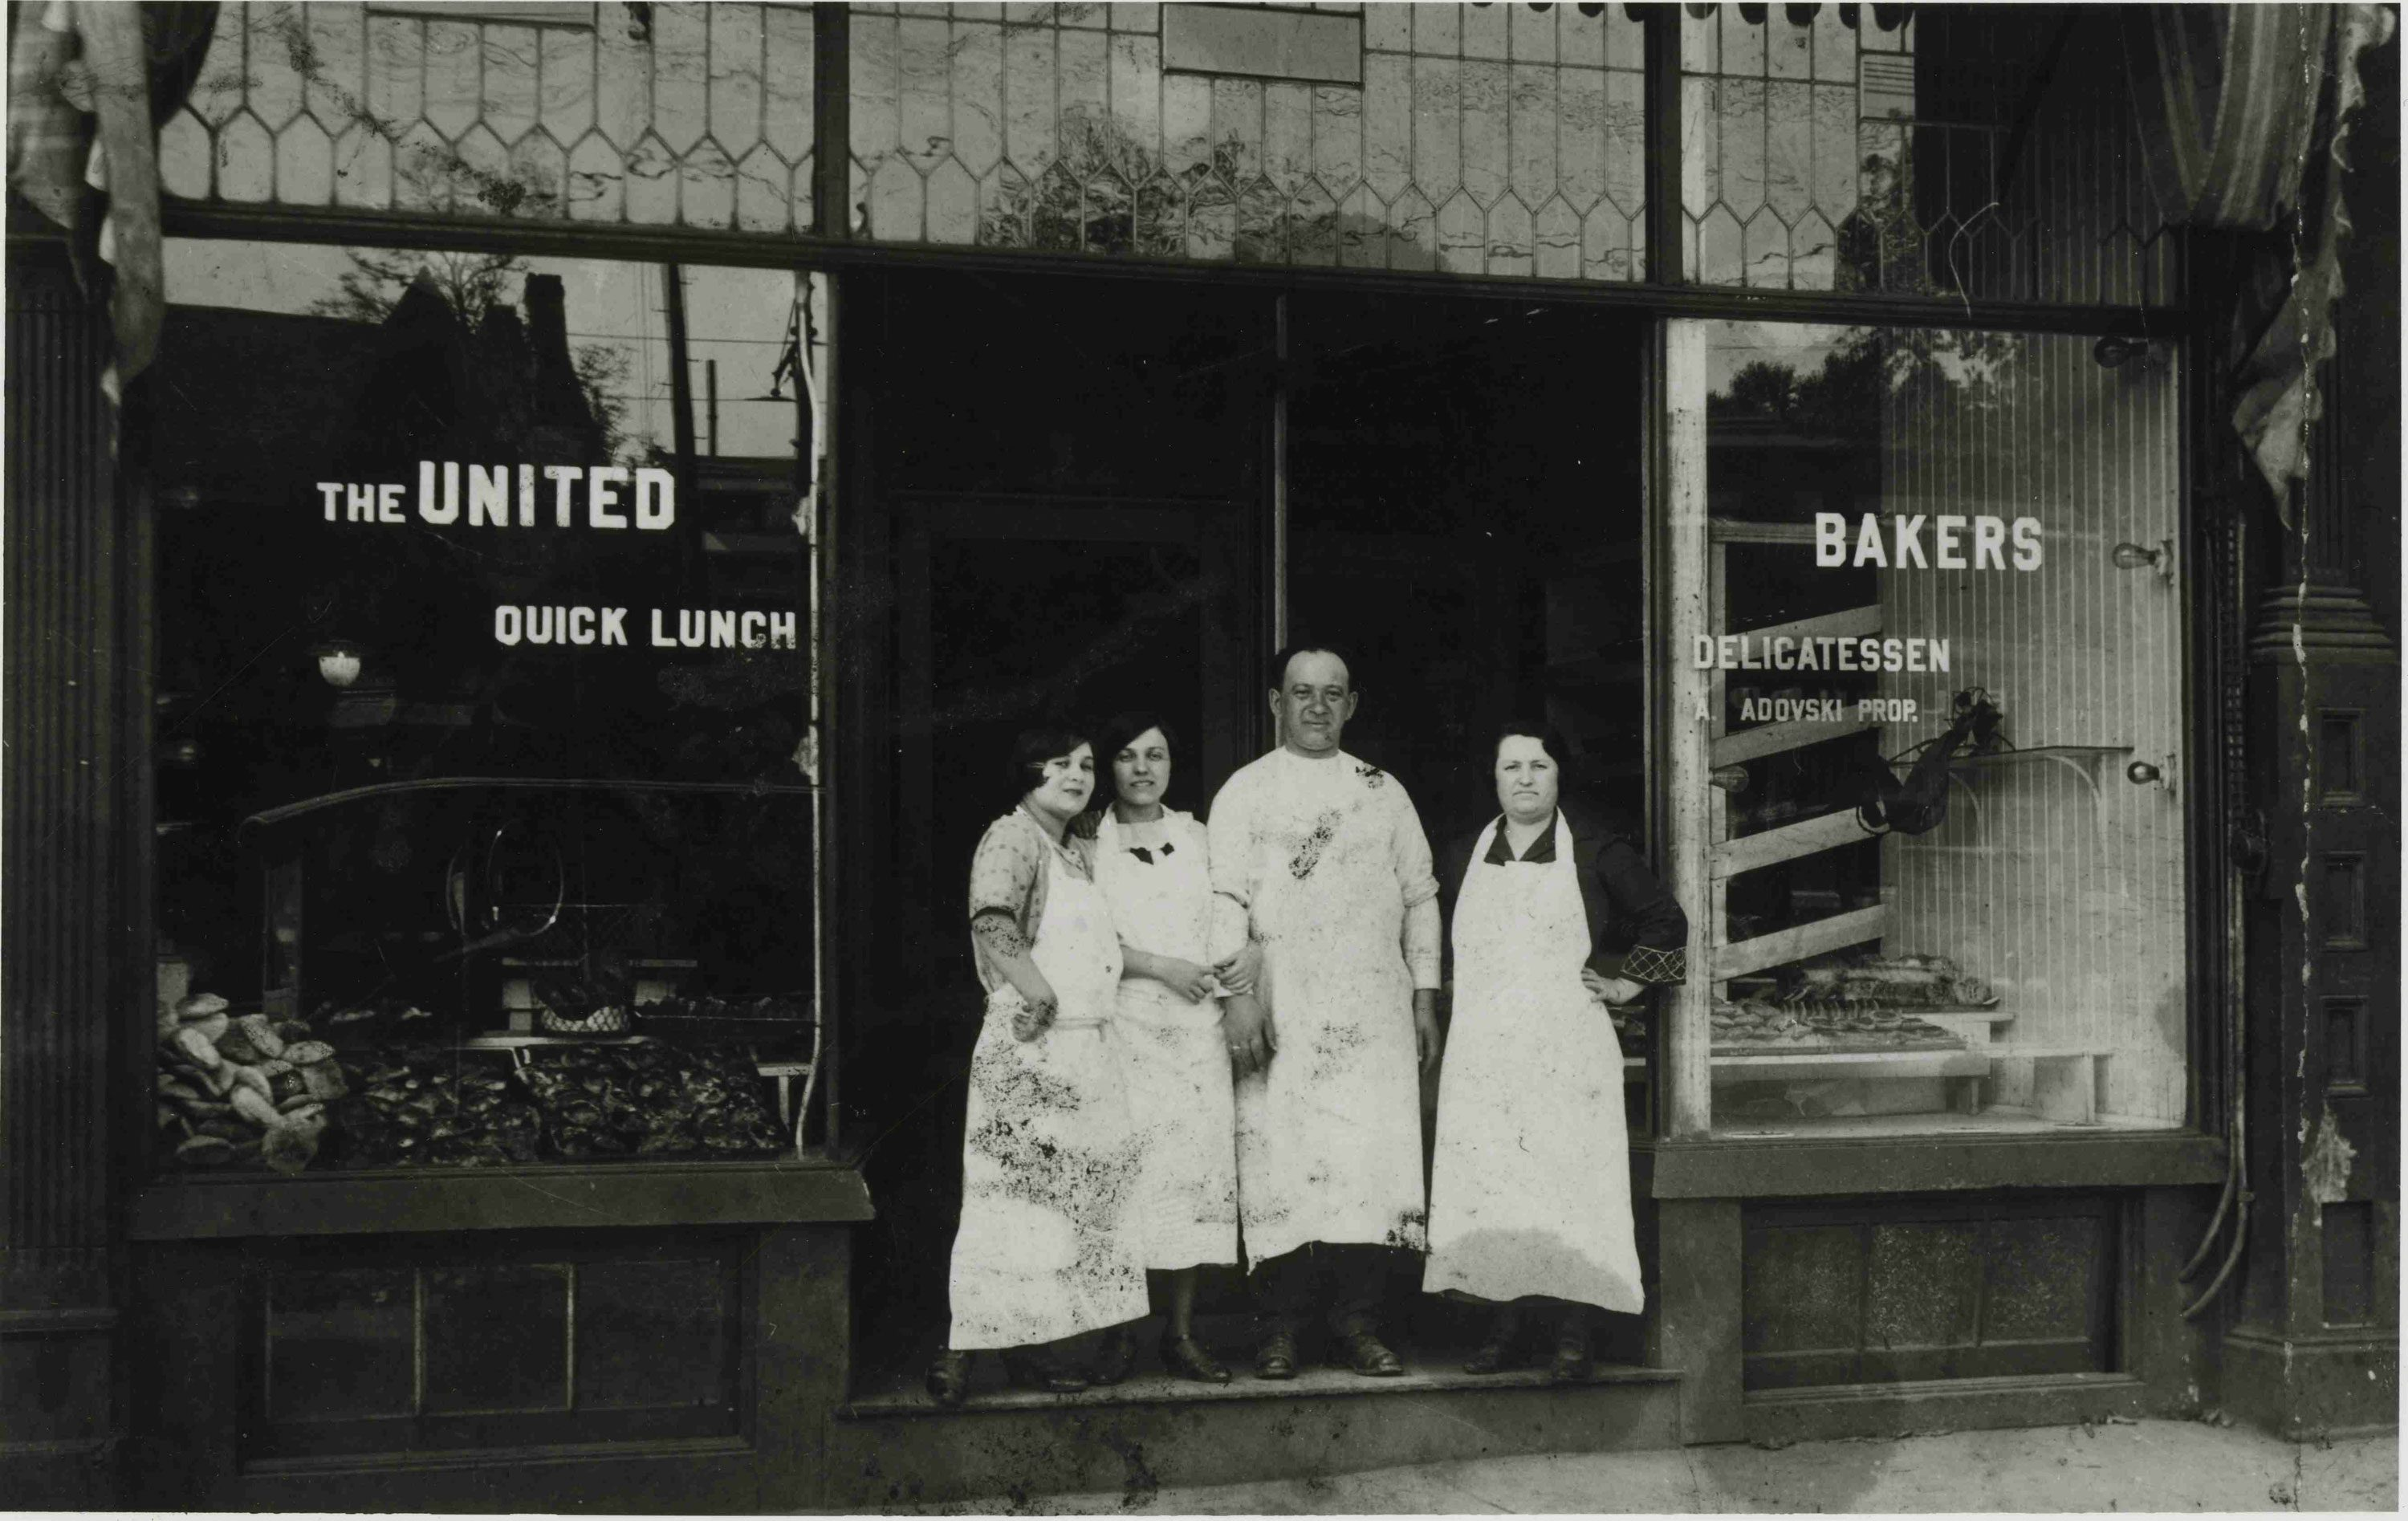 Black and white photo of one man and three woman standing in front of restaurant doorway